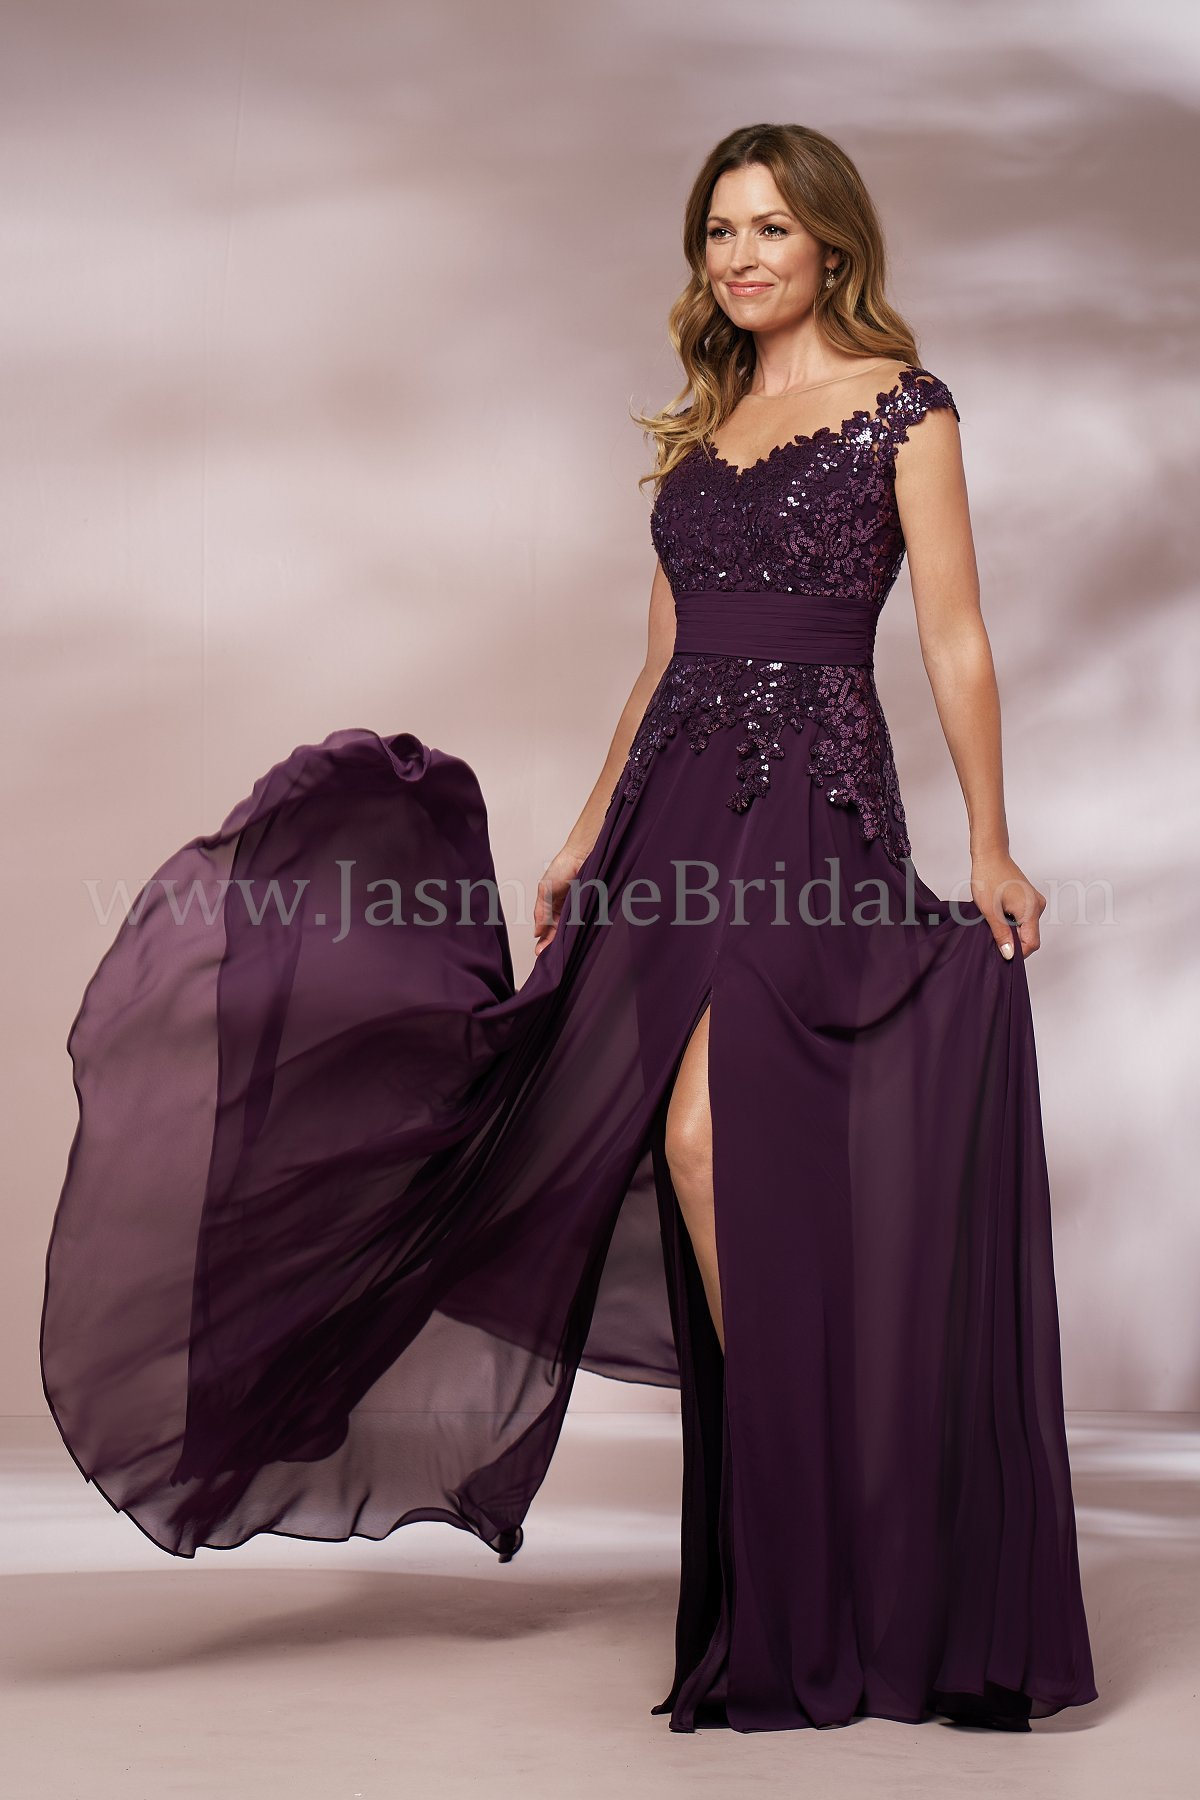 mother-of-the-bride-dresses-J205012-F